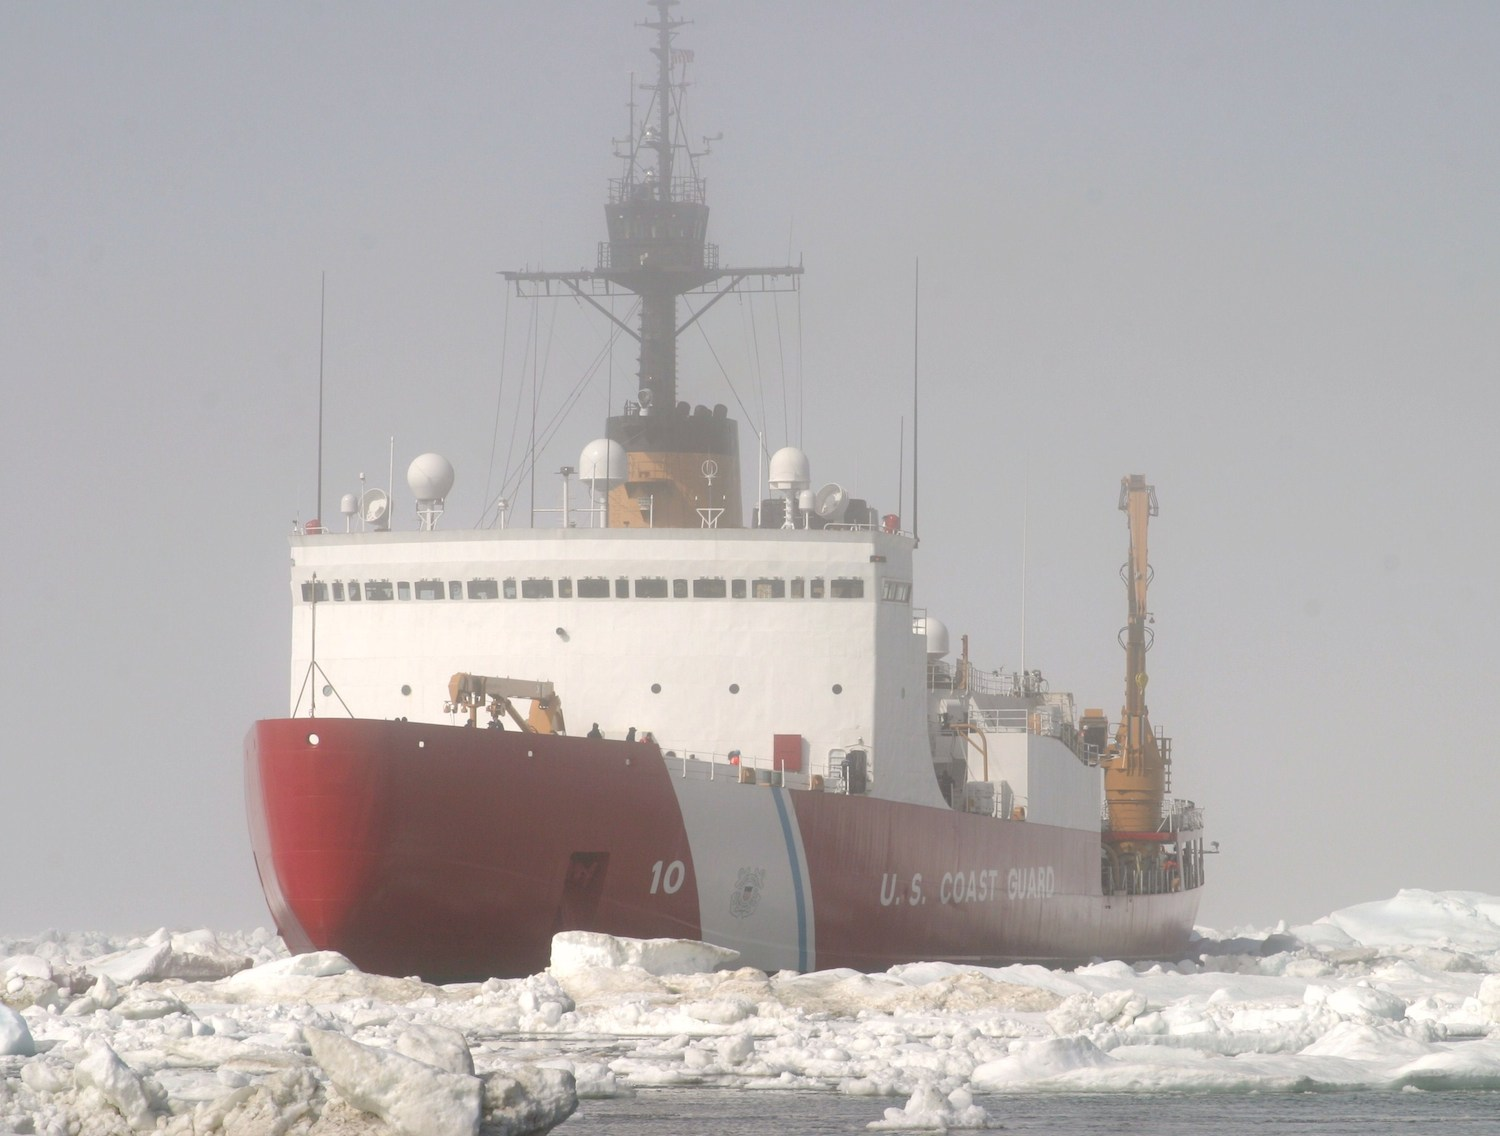 The Polar Star in sea ice off Antarctica. (U.S. Coast Guard)